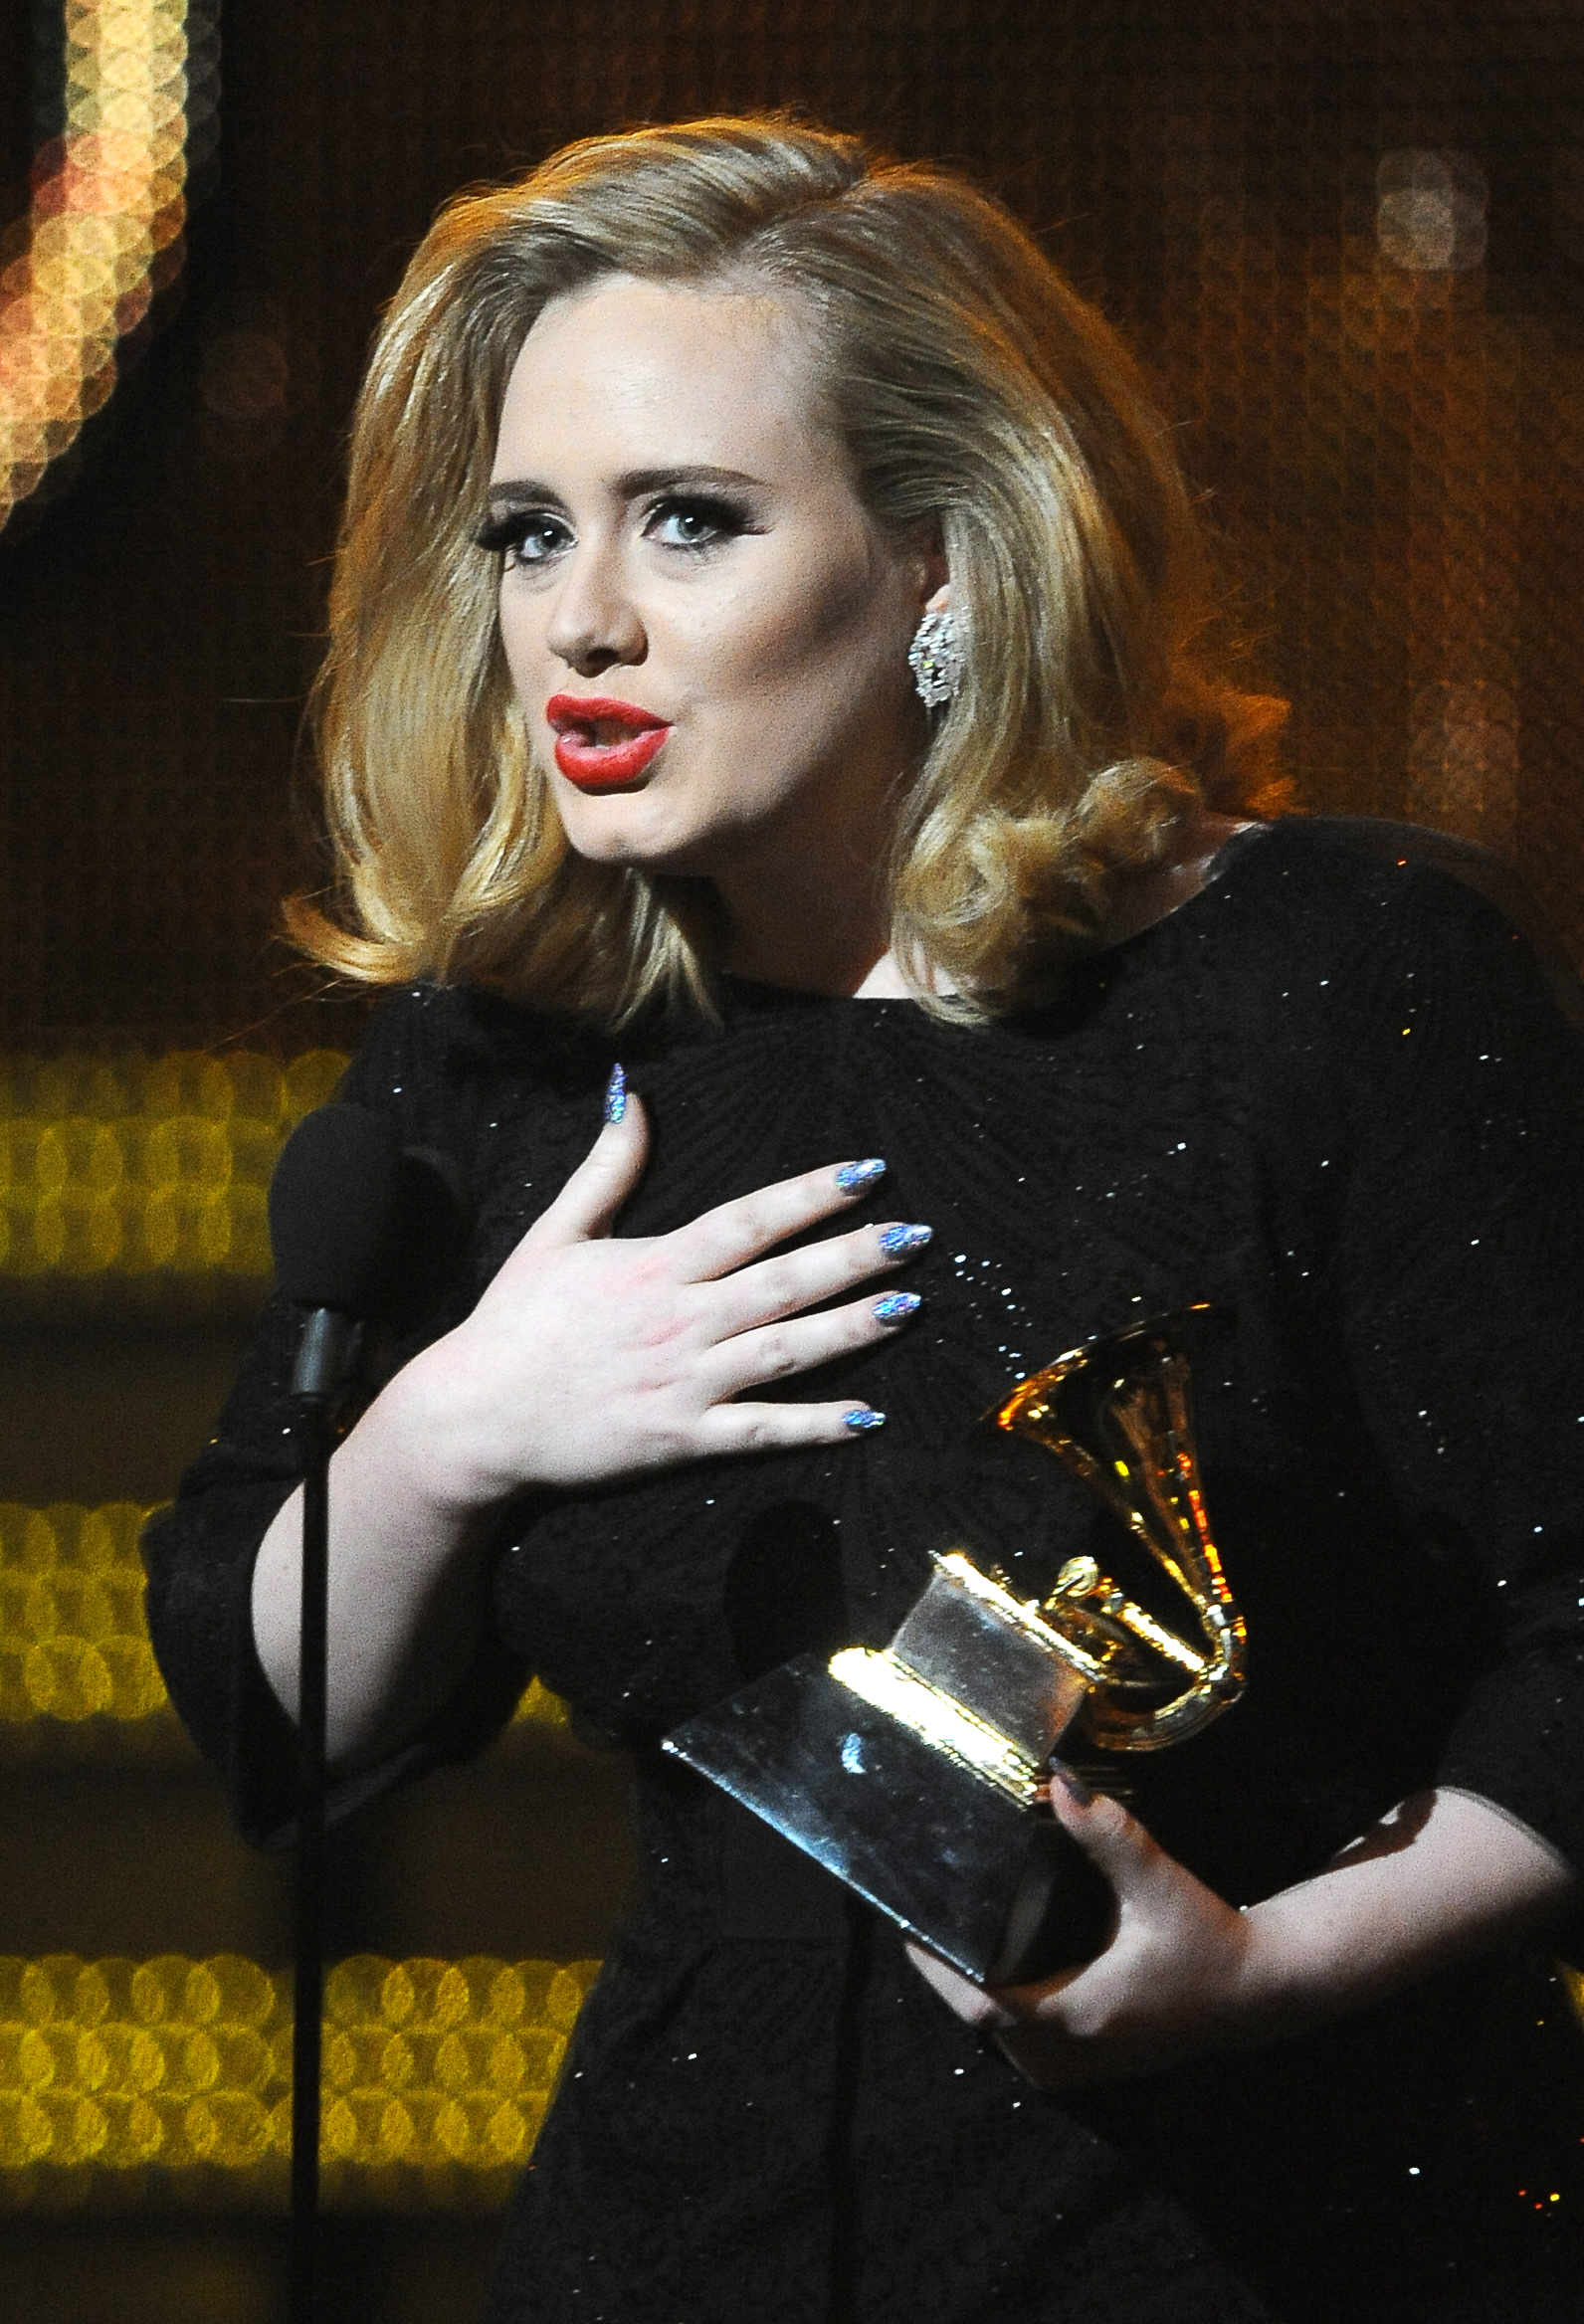 Adele took the stage at the 2012 Grammys.